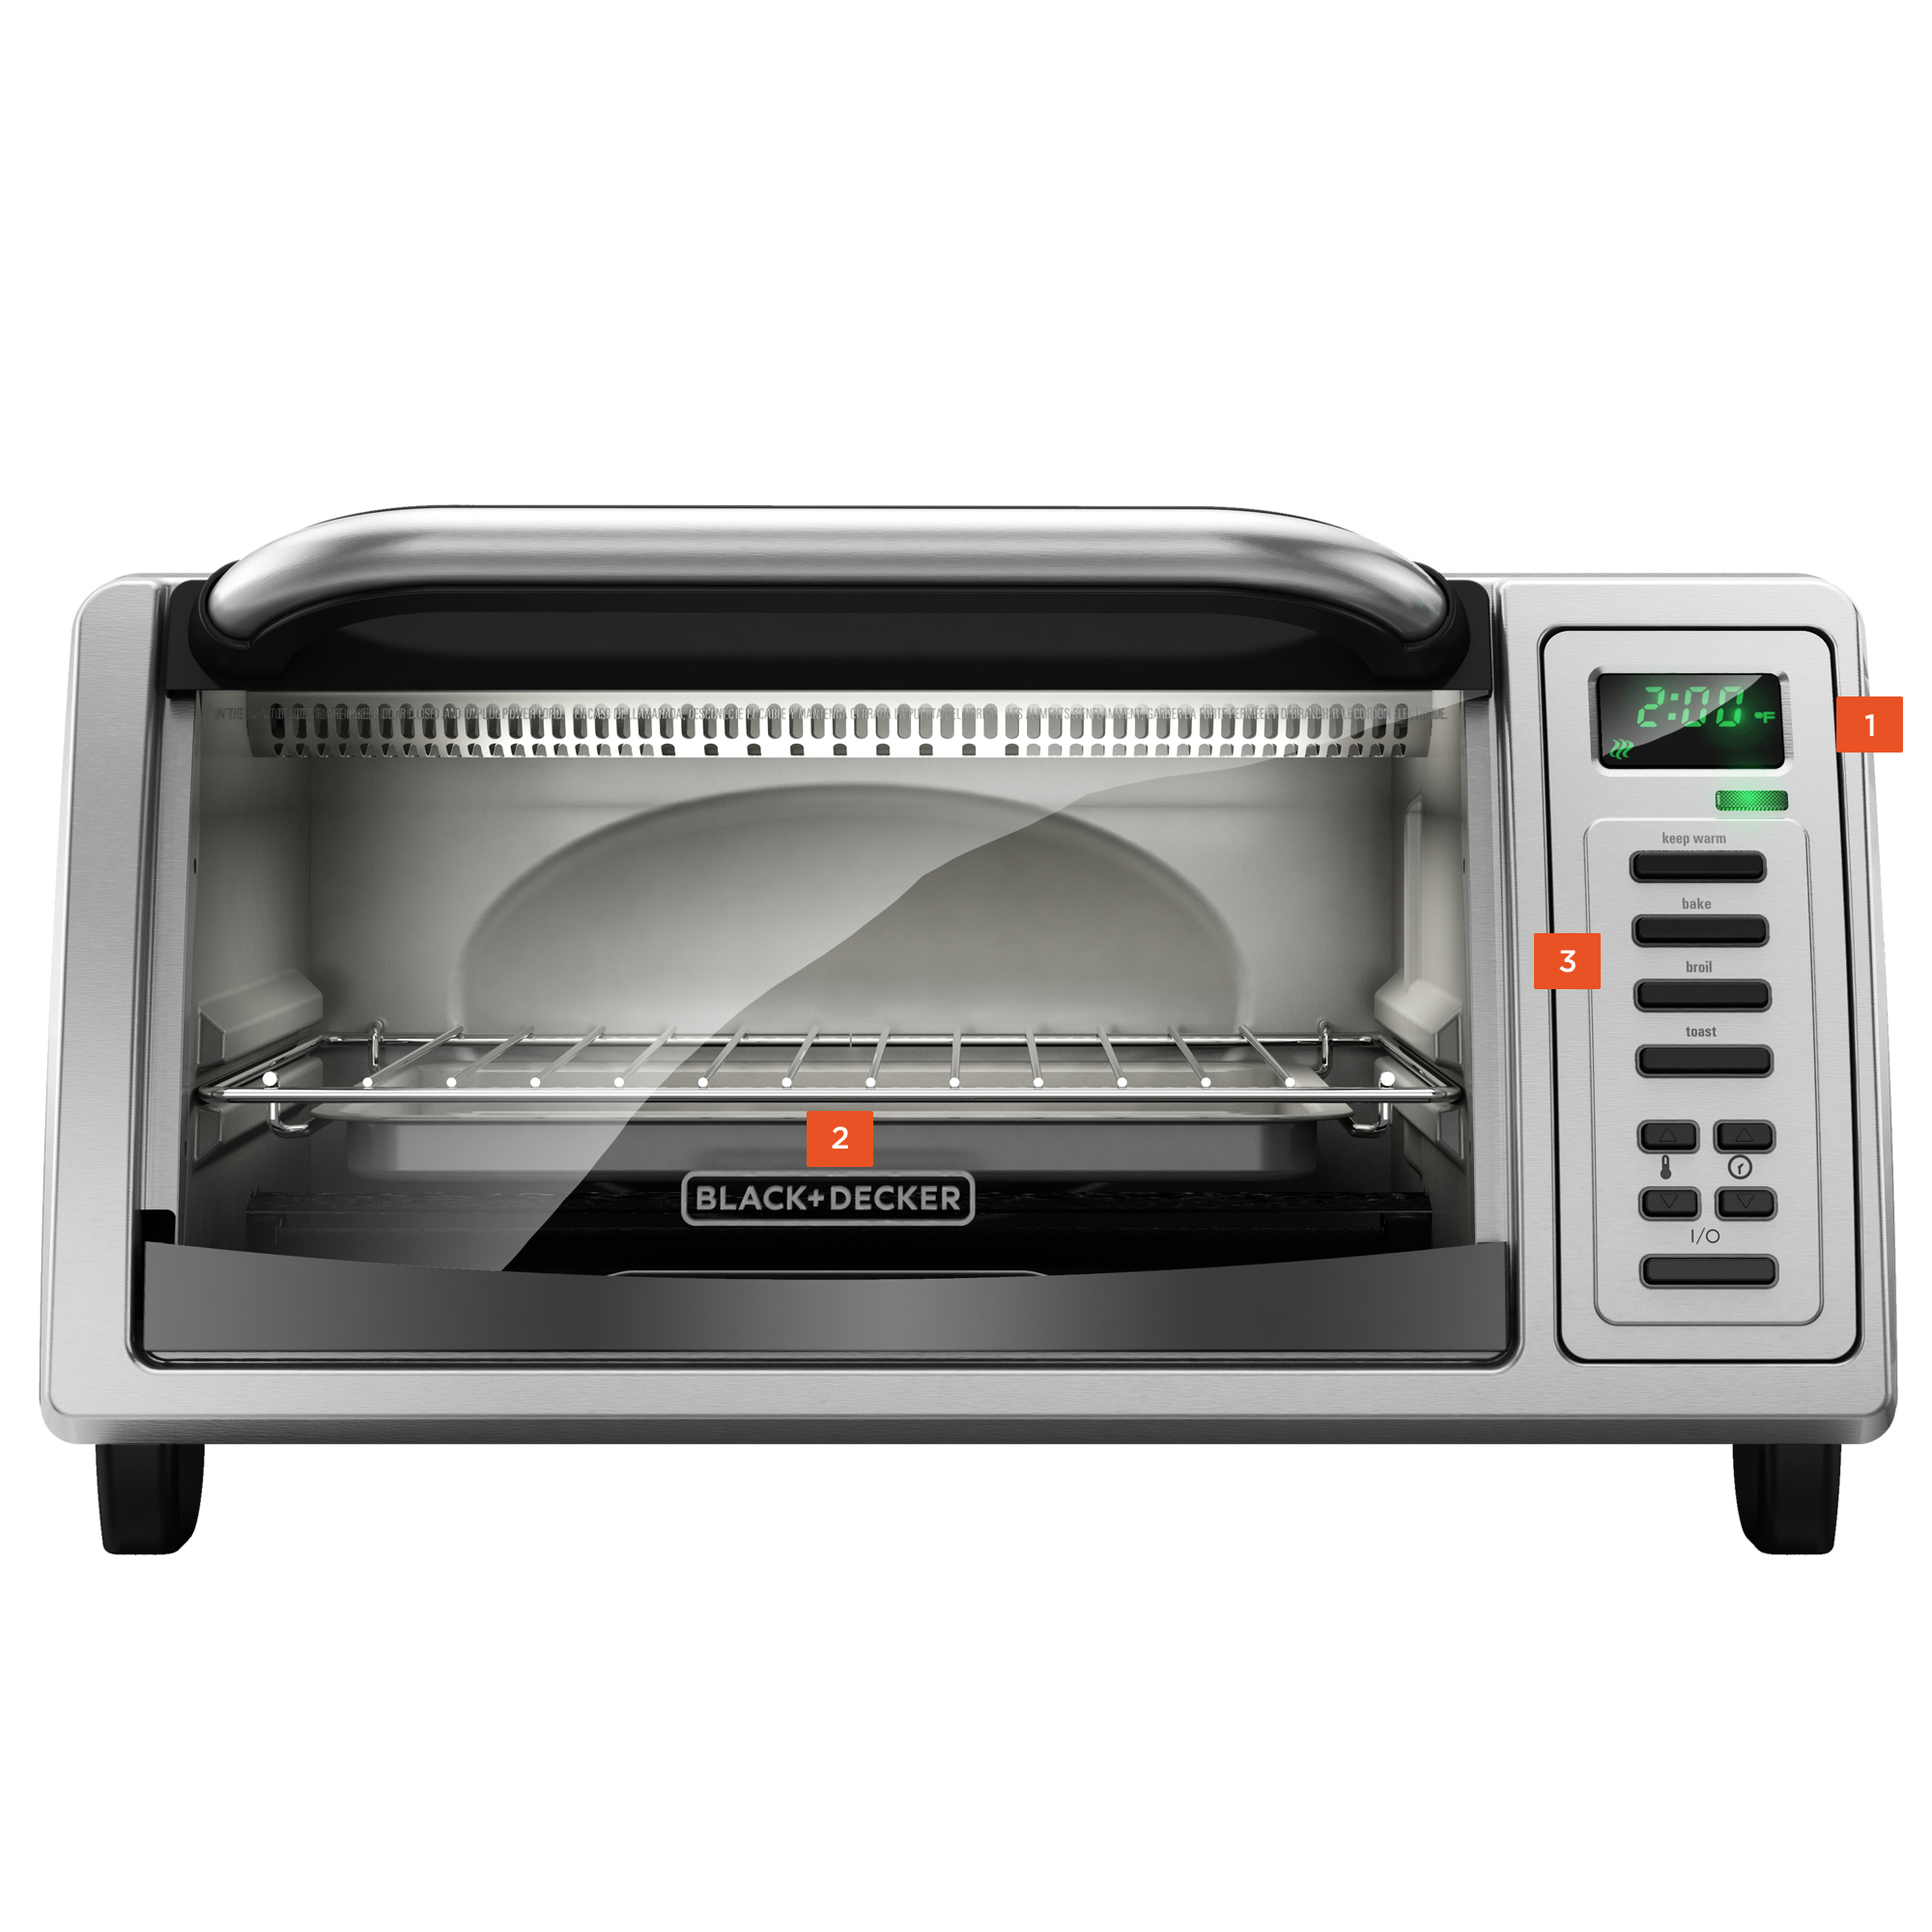 convection and toaster ovens cooking appliances black decker rh blackanddeckerappliances com black & decker toaster oven user manual black & decker toaster oven instruction manual